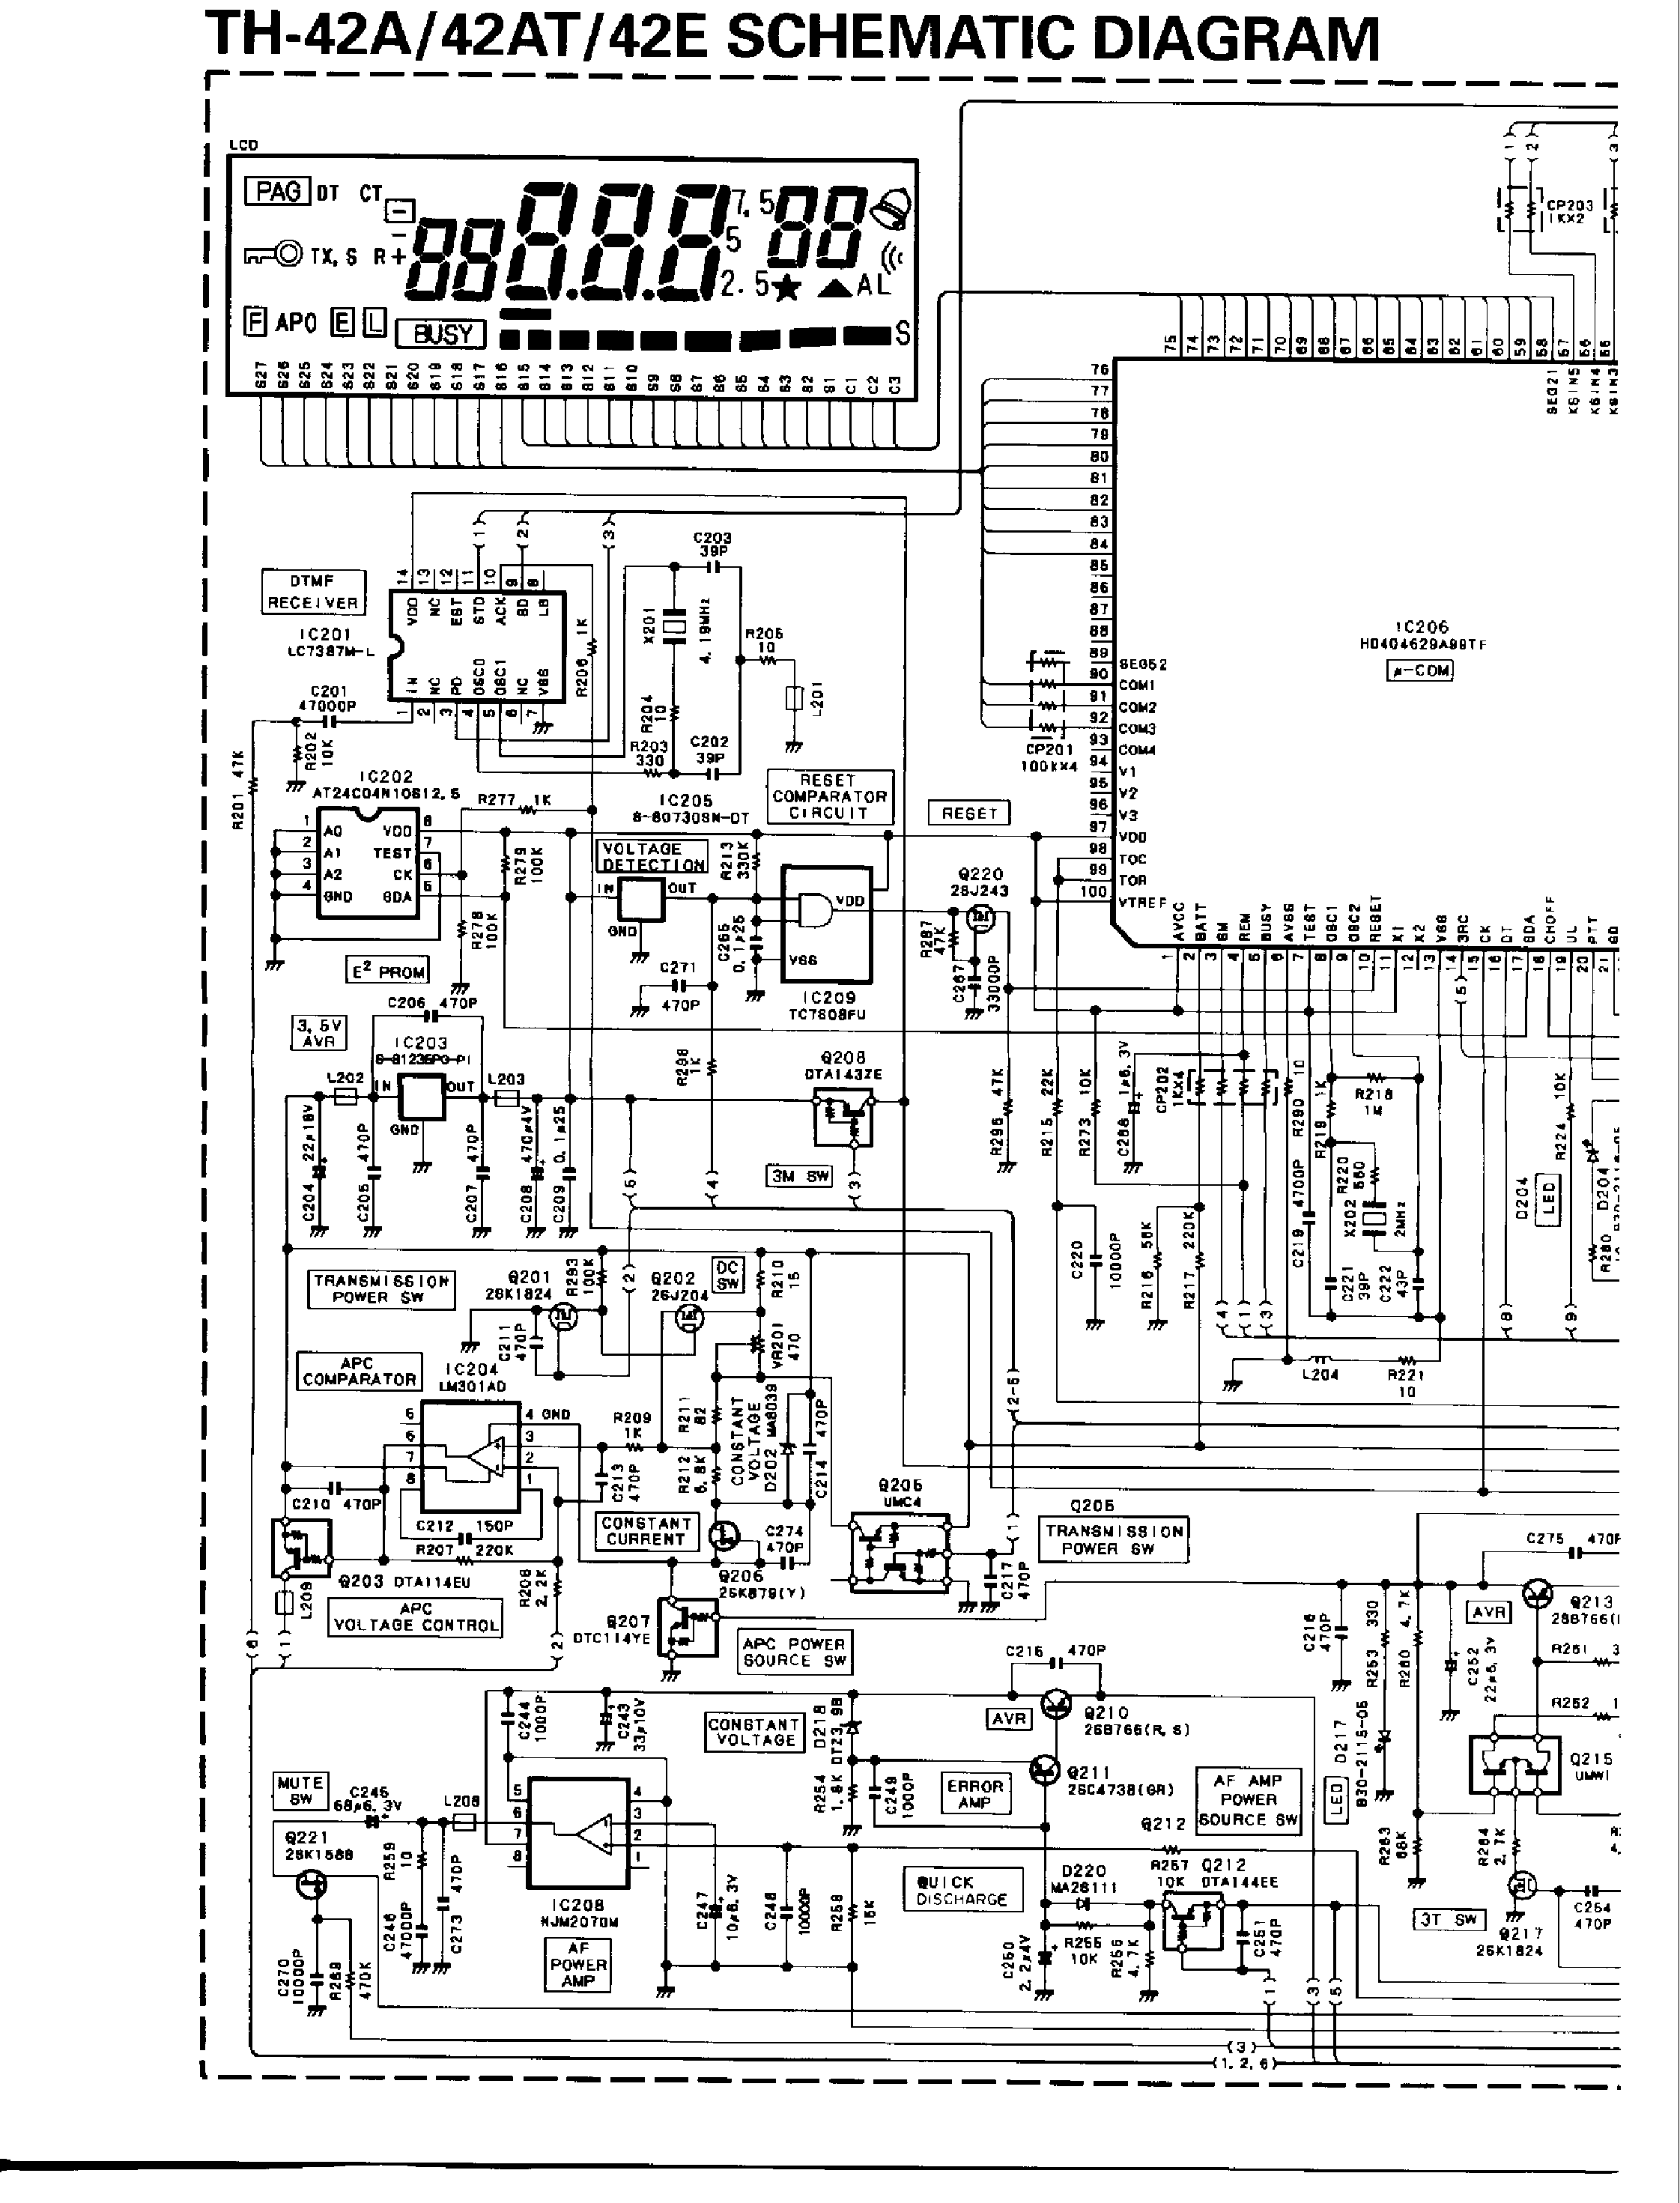 KENWOOD TM-D700 Service Manual free download, schematics